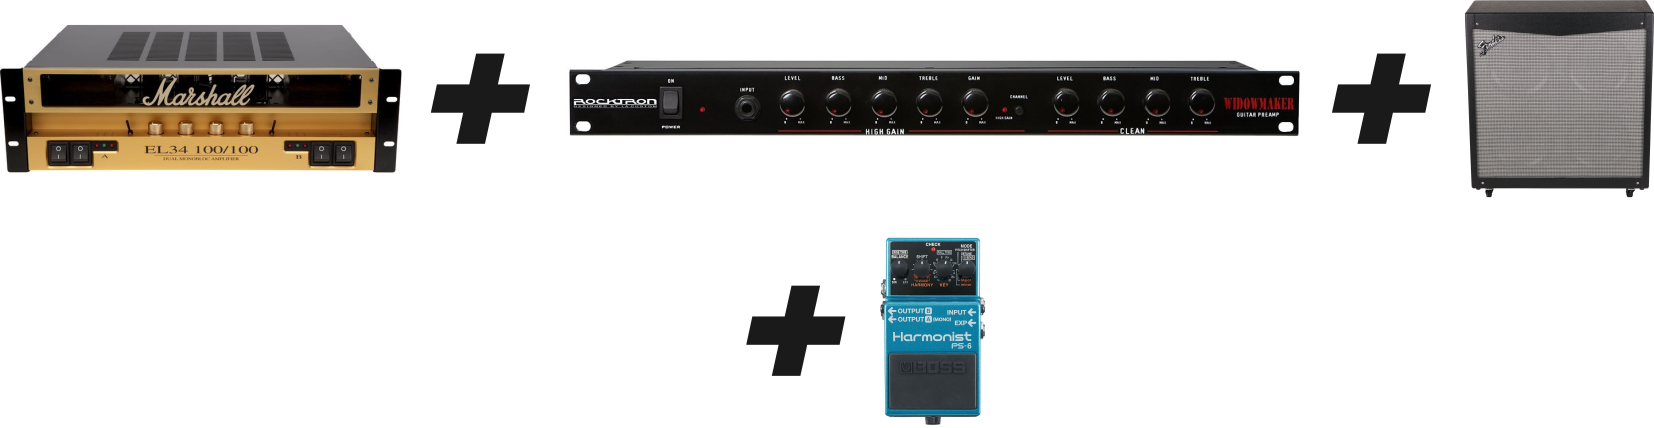 how to setup a guitar rack system with the proper cases guitar chalkguitar rack system setup option (preamp, power amp and speaker)